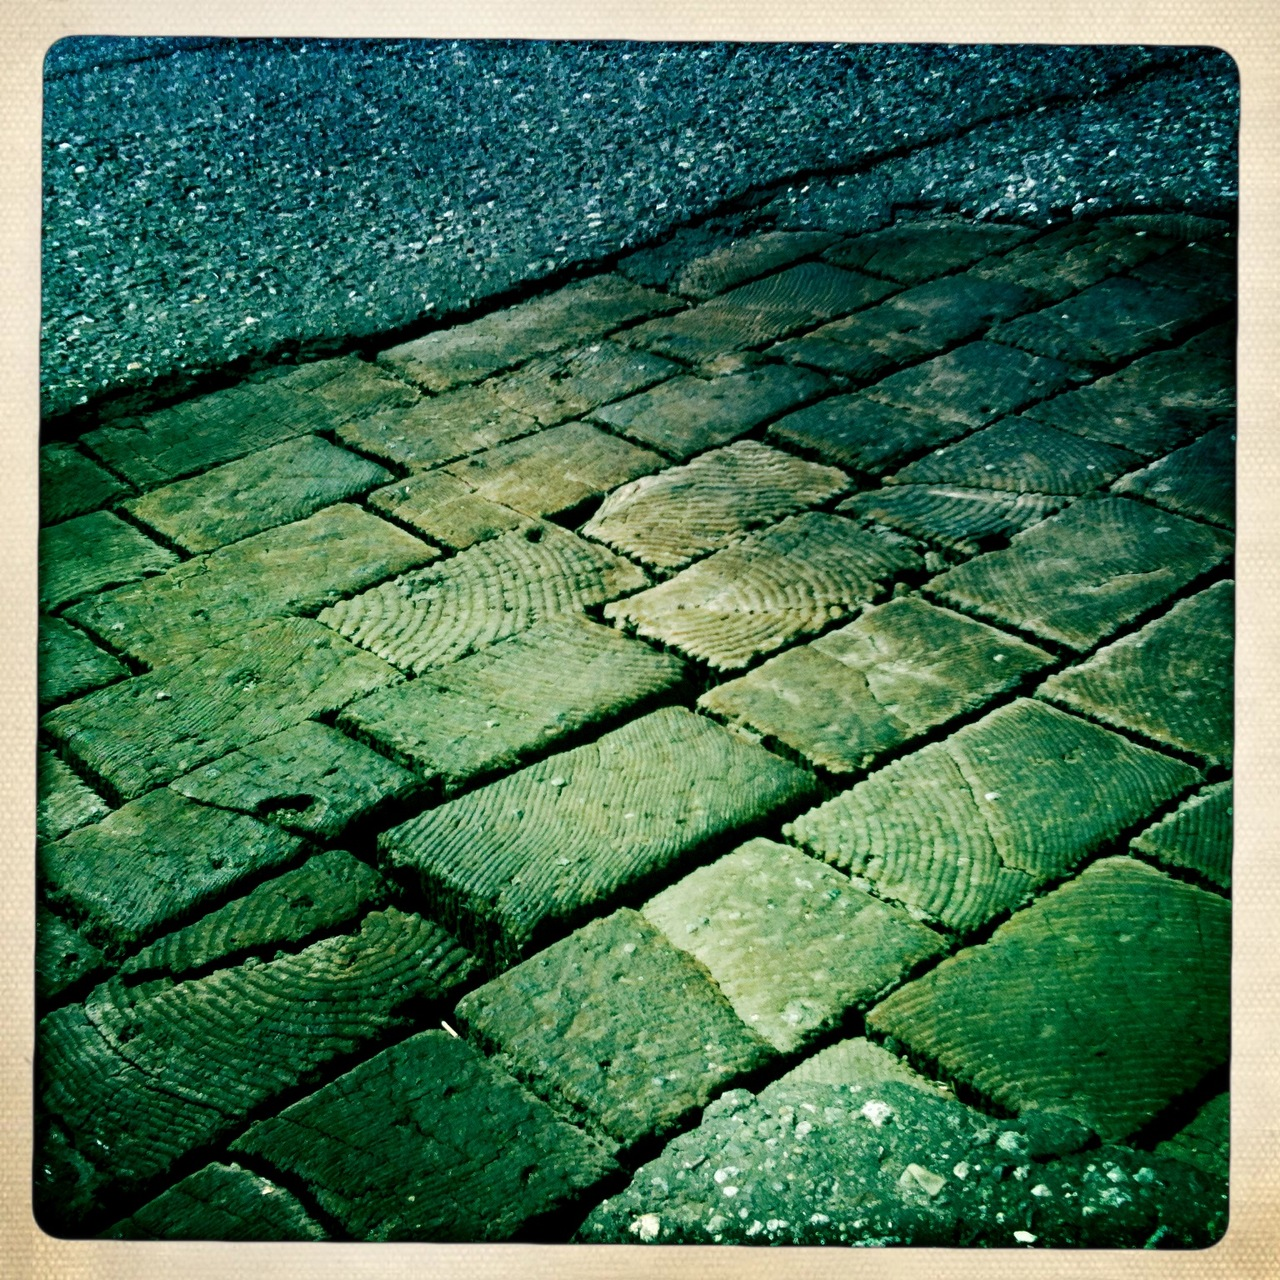 Where the streets are paved with…fir   Not far away in historic Railtown, the asphalt road surface has chipped away to reveal the old wooden cobbles, a century old and still doing their thing.   nr